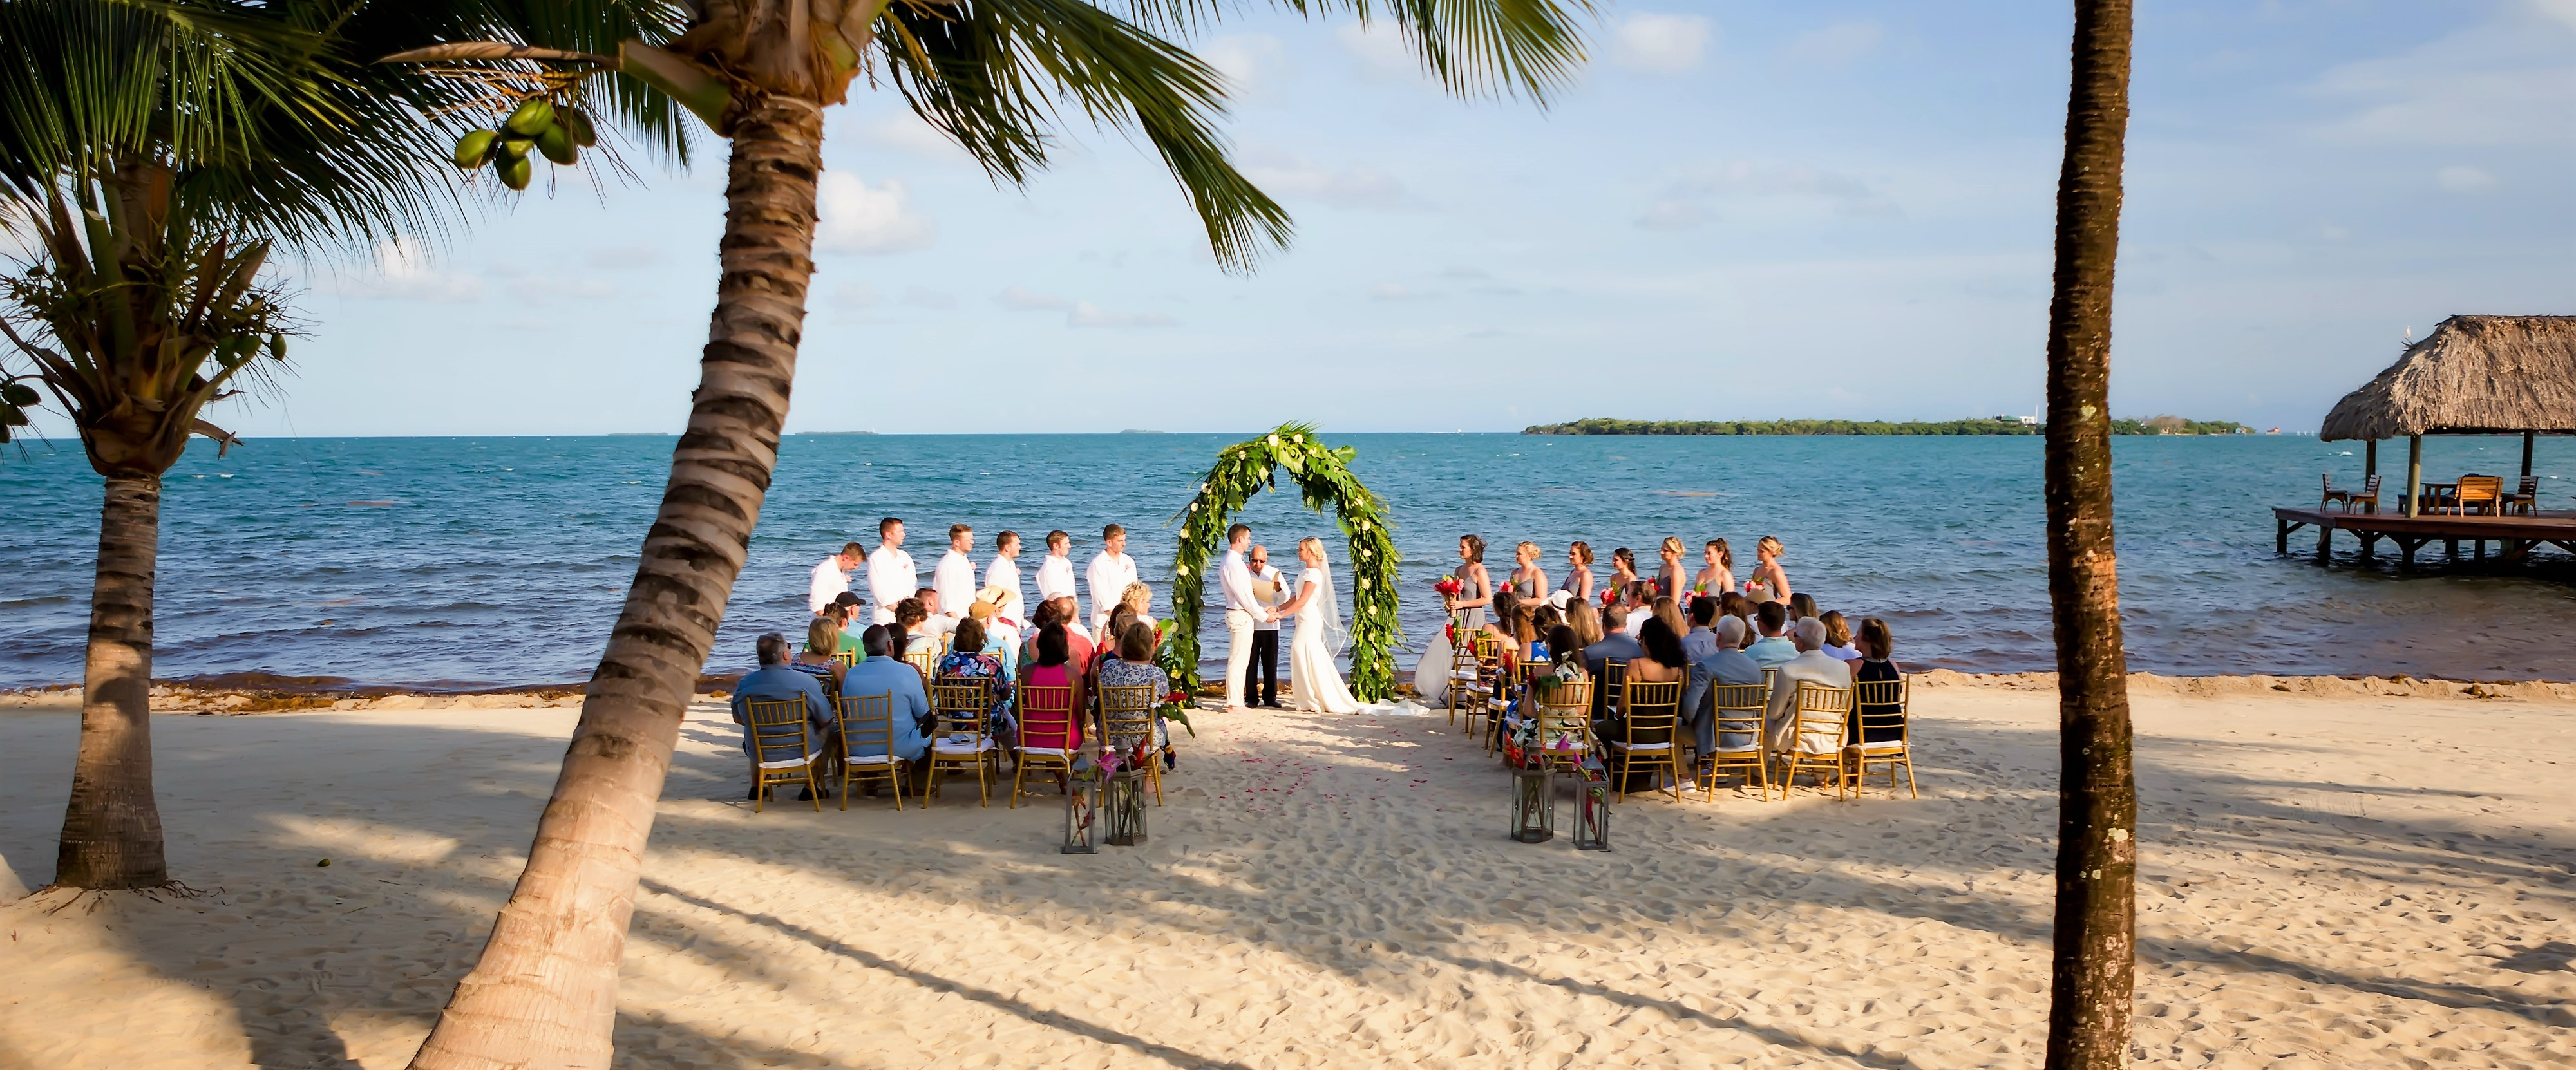 Beachfront Weddings in Belize